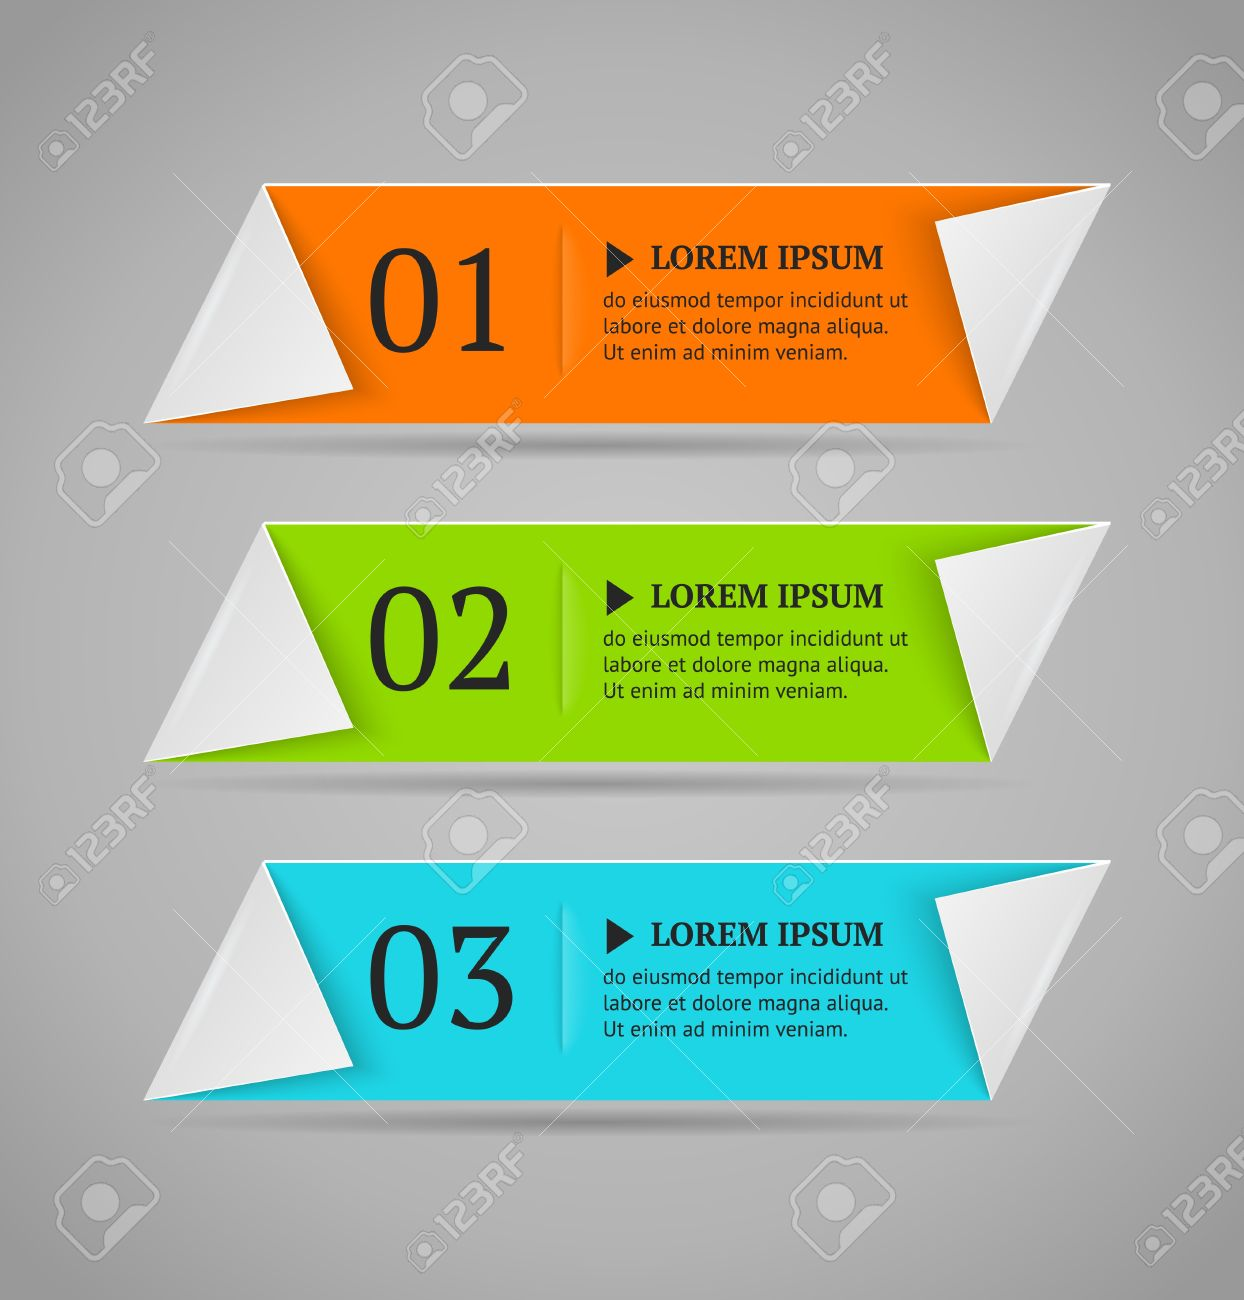 Horizontal colorful options banner template  Vector illustration  Origami style Stock Vector - 21781938